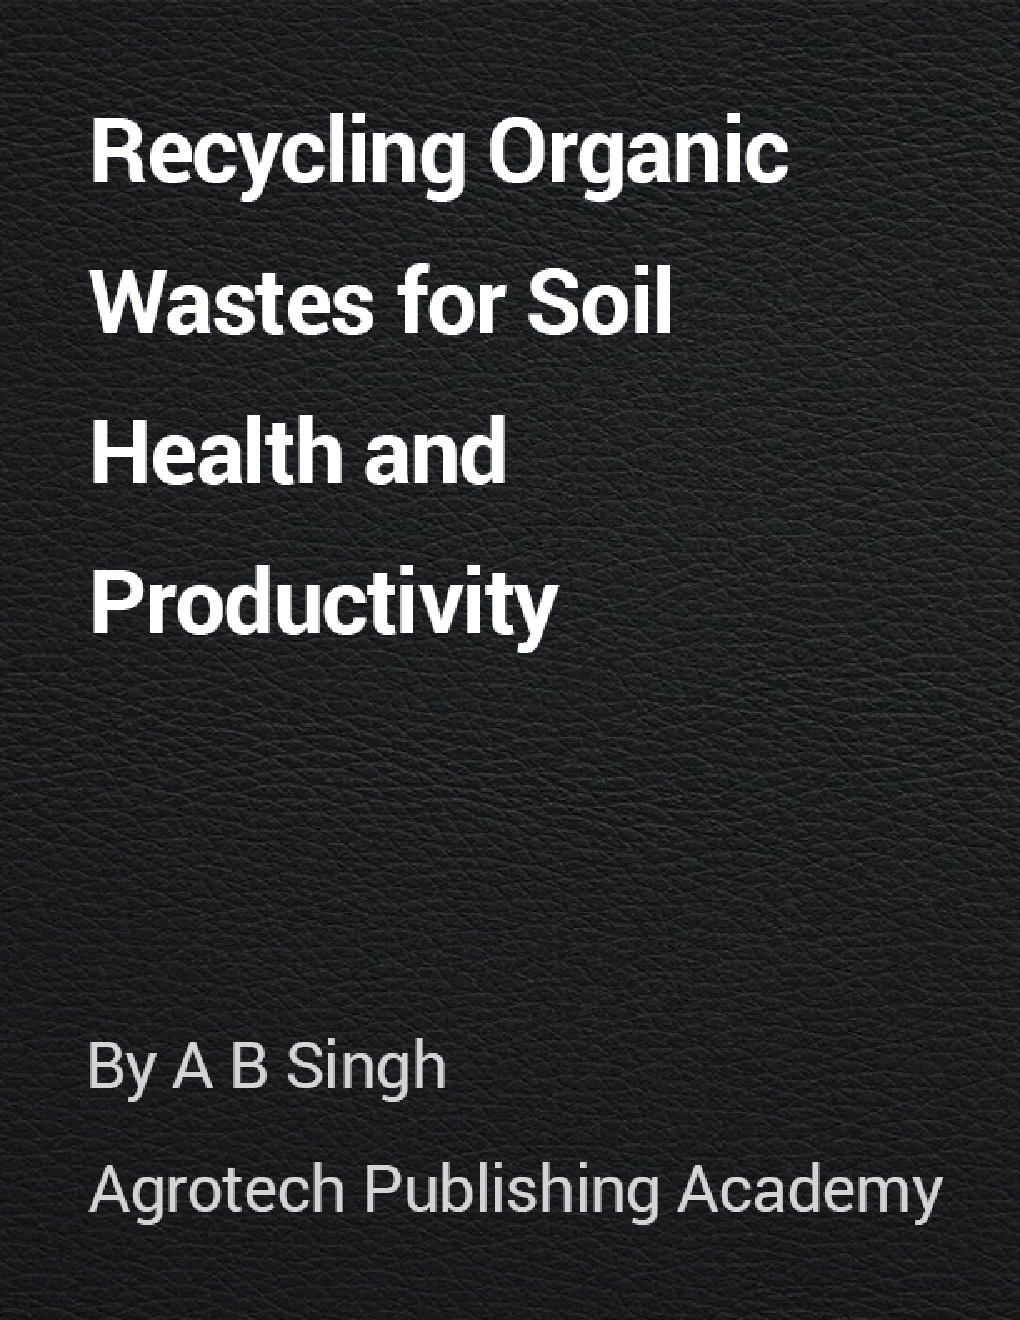 Recycling Organic Wastes for Soil Health and Productivity - Page 1